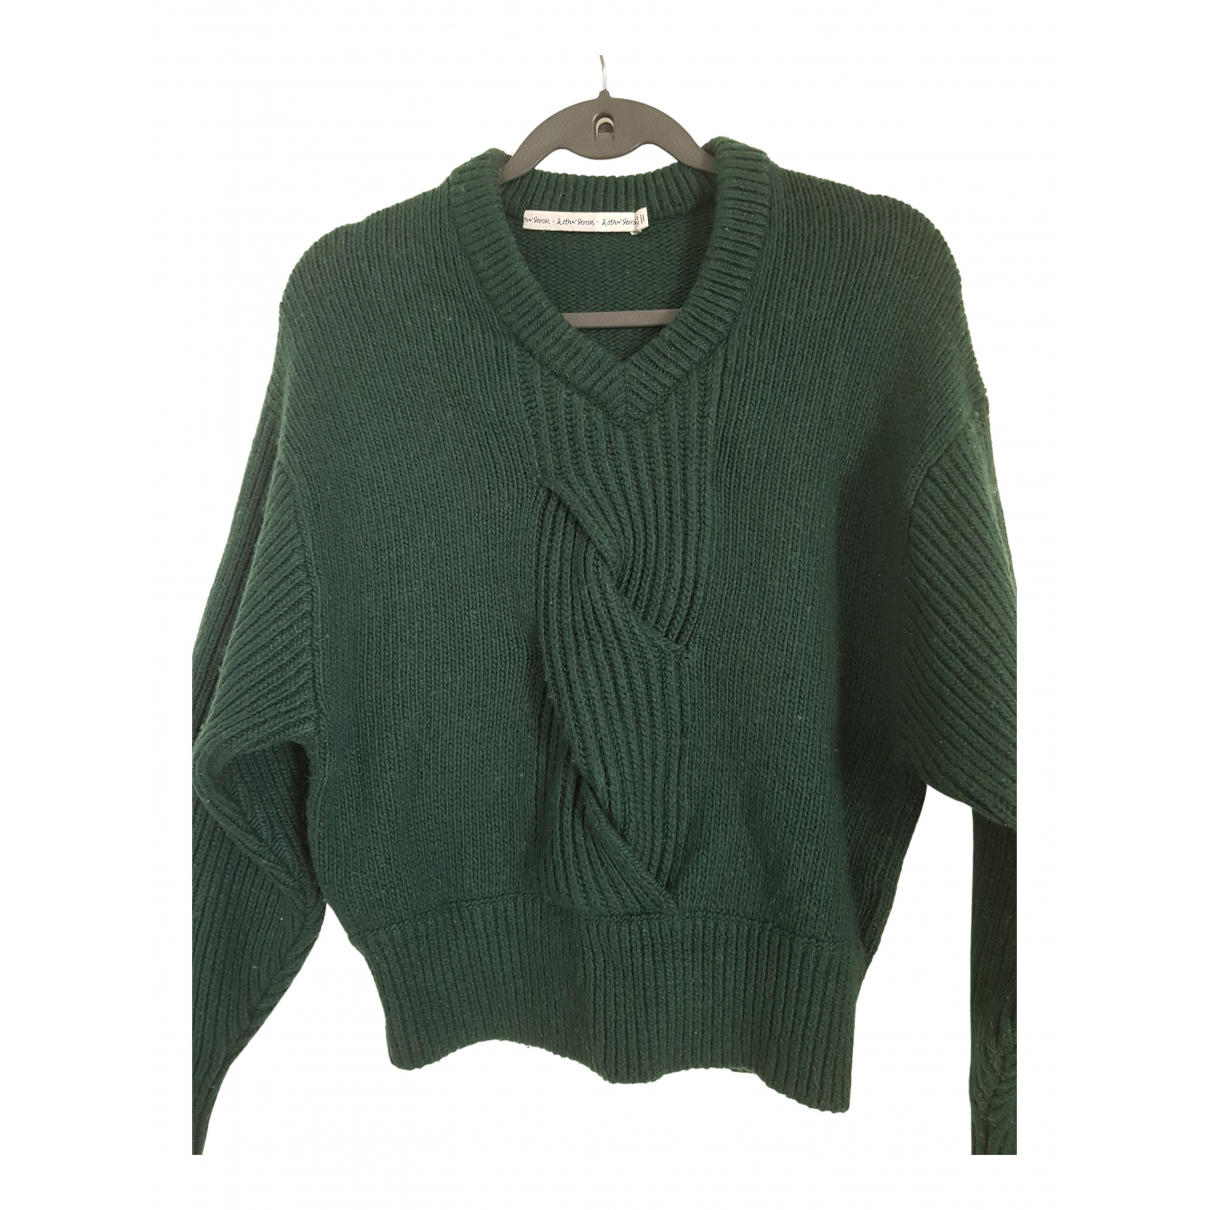 & Other Stories \N Pullover in  Gruen Wolle